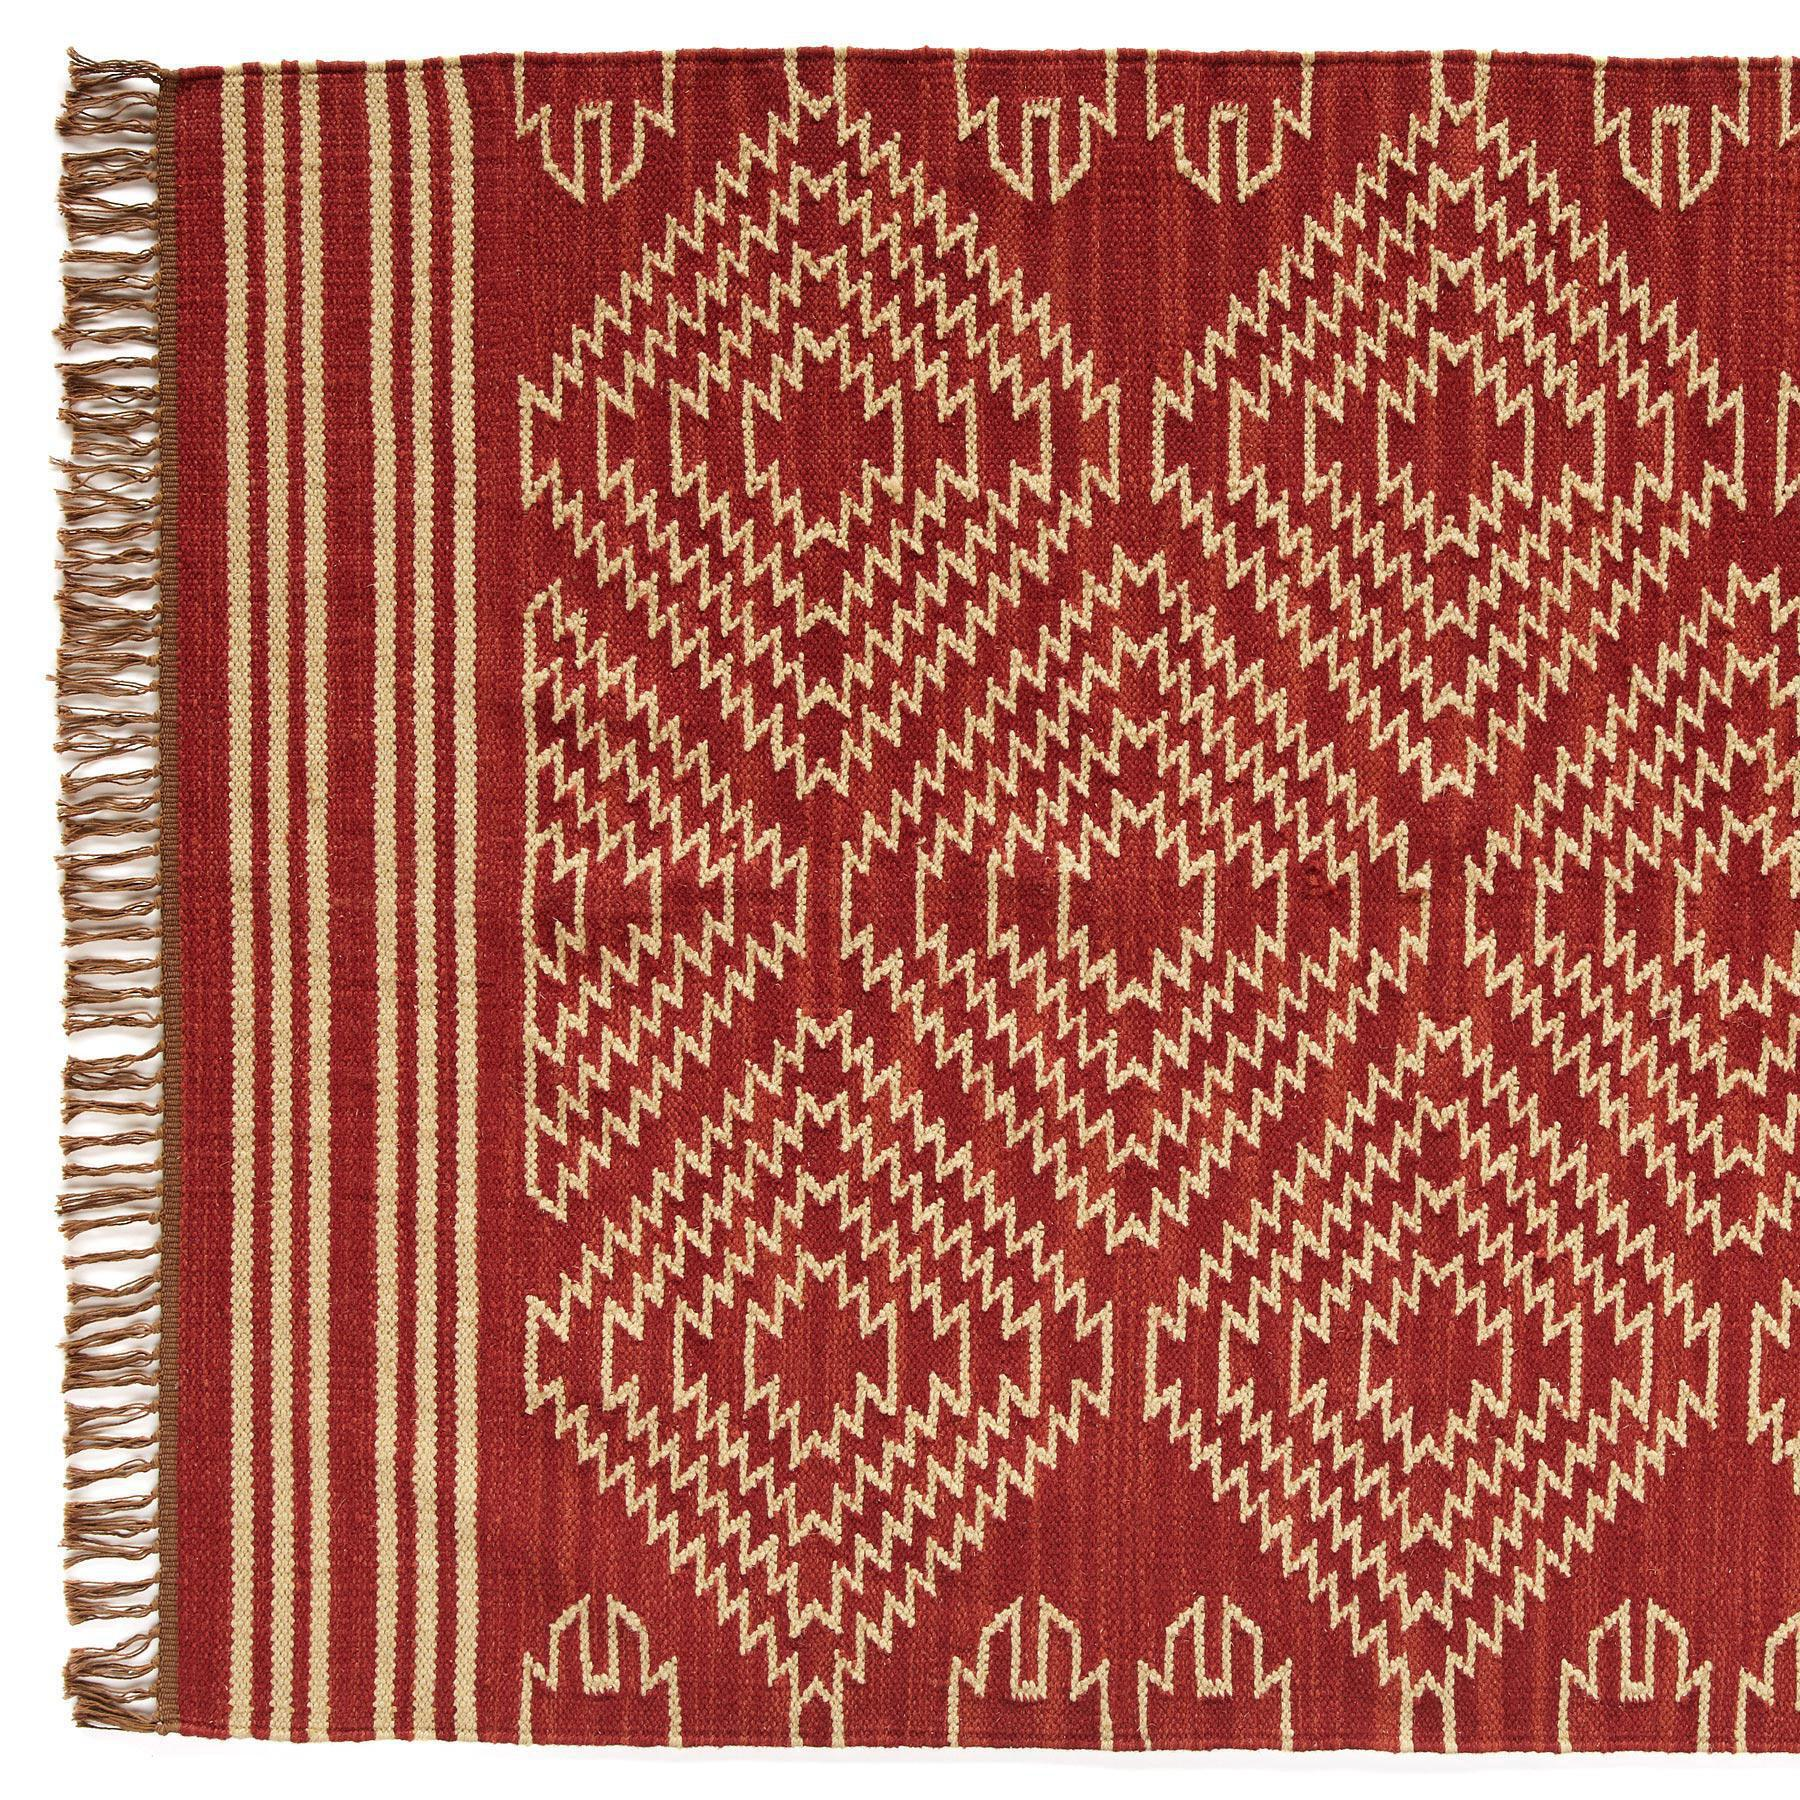 TRIBAL GRAPHIC DHURRIE RUG - LG: View 1